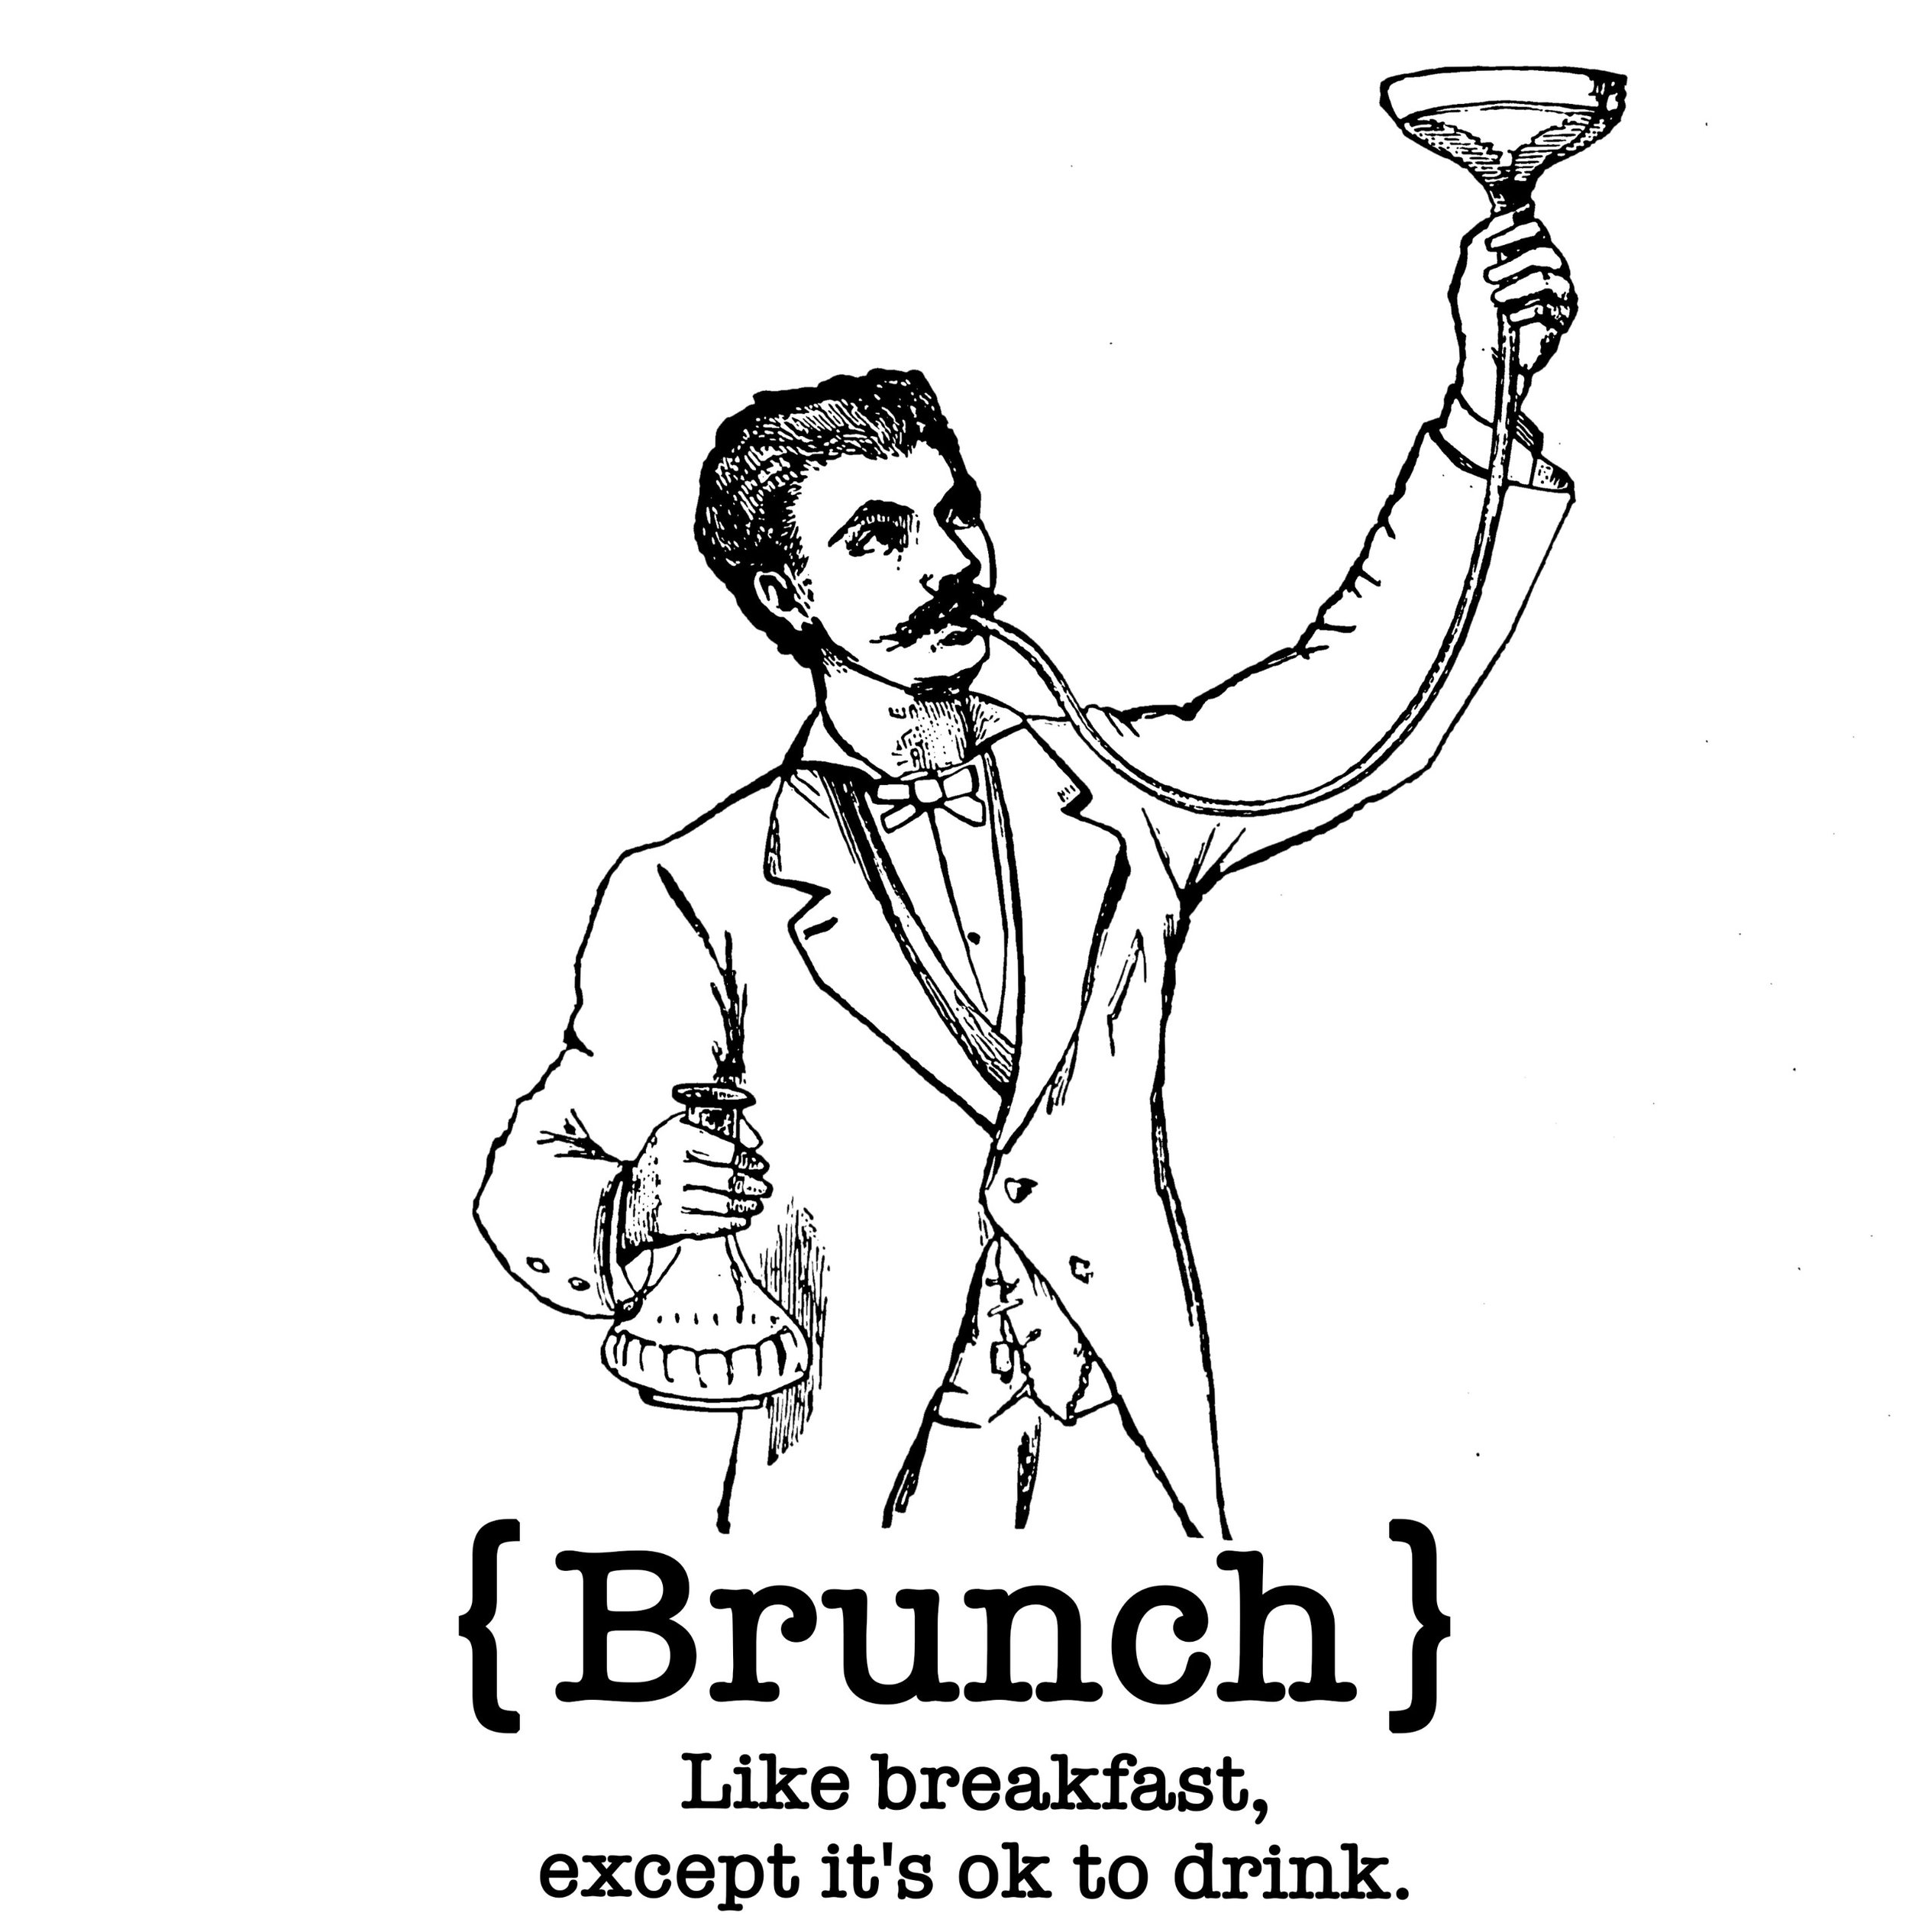 every saturday 11am to 2pm - what's better than prosecco with your breakfast? bottomless prosecco with brunch! every saturday join us for our infamous bottomless brunch ABLY SOUND-TRACKED by the lovely dj oliver sudden. advanced booking is essential.